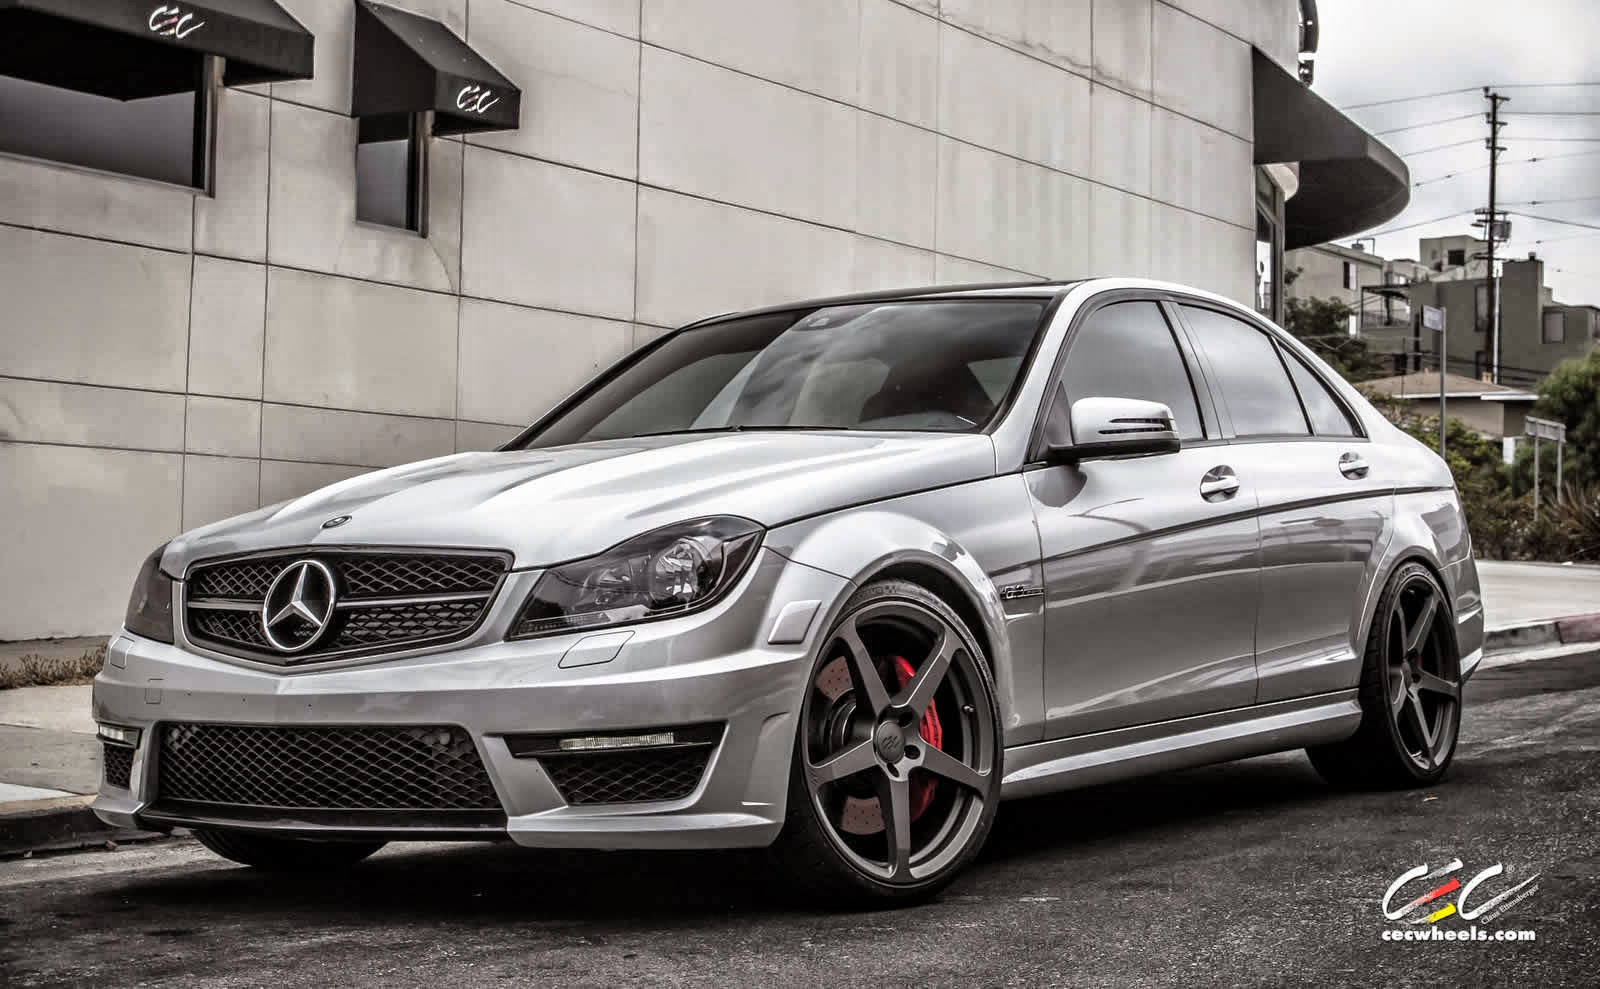 Mercedes benz w204 c63 amg with cec c884 wheels benztuning for C63 mercedes benz